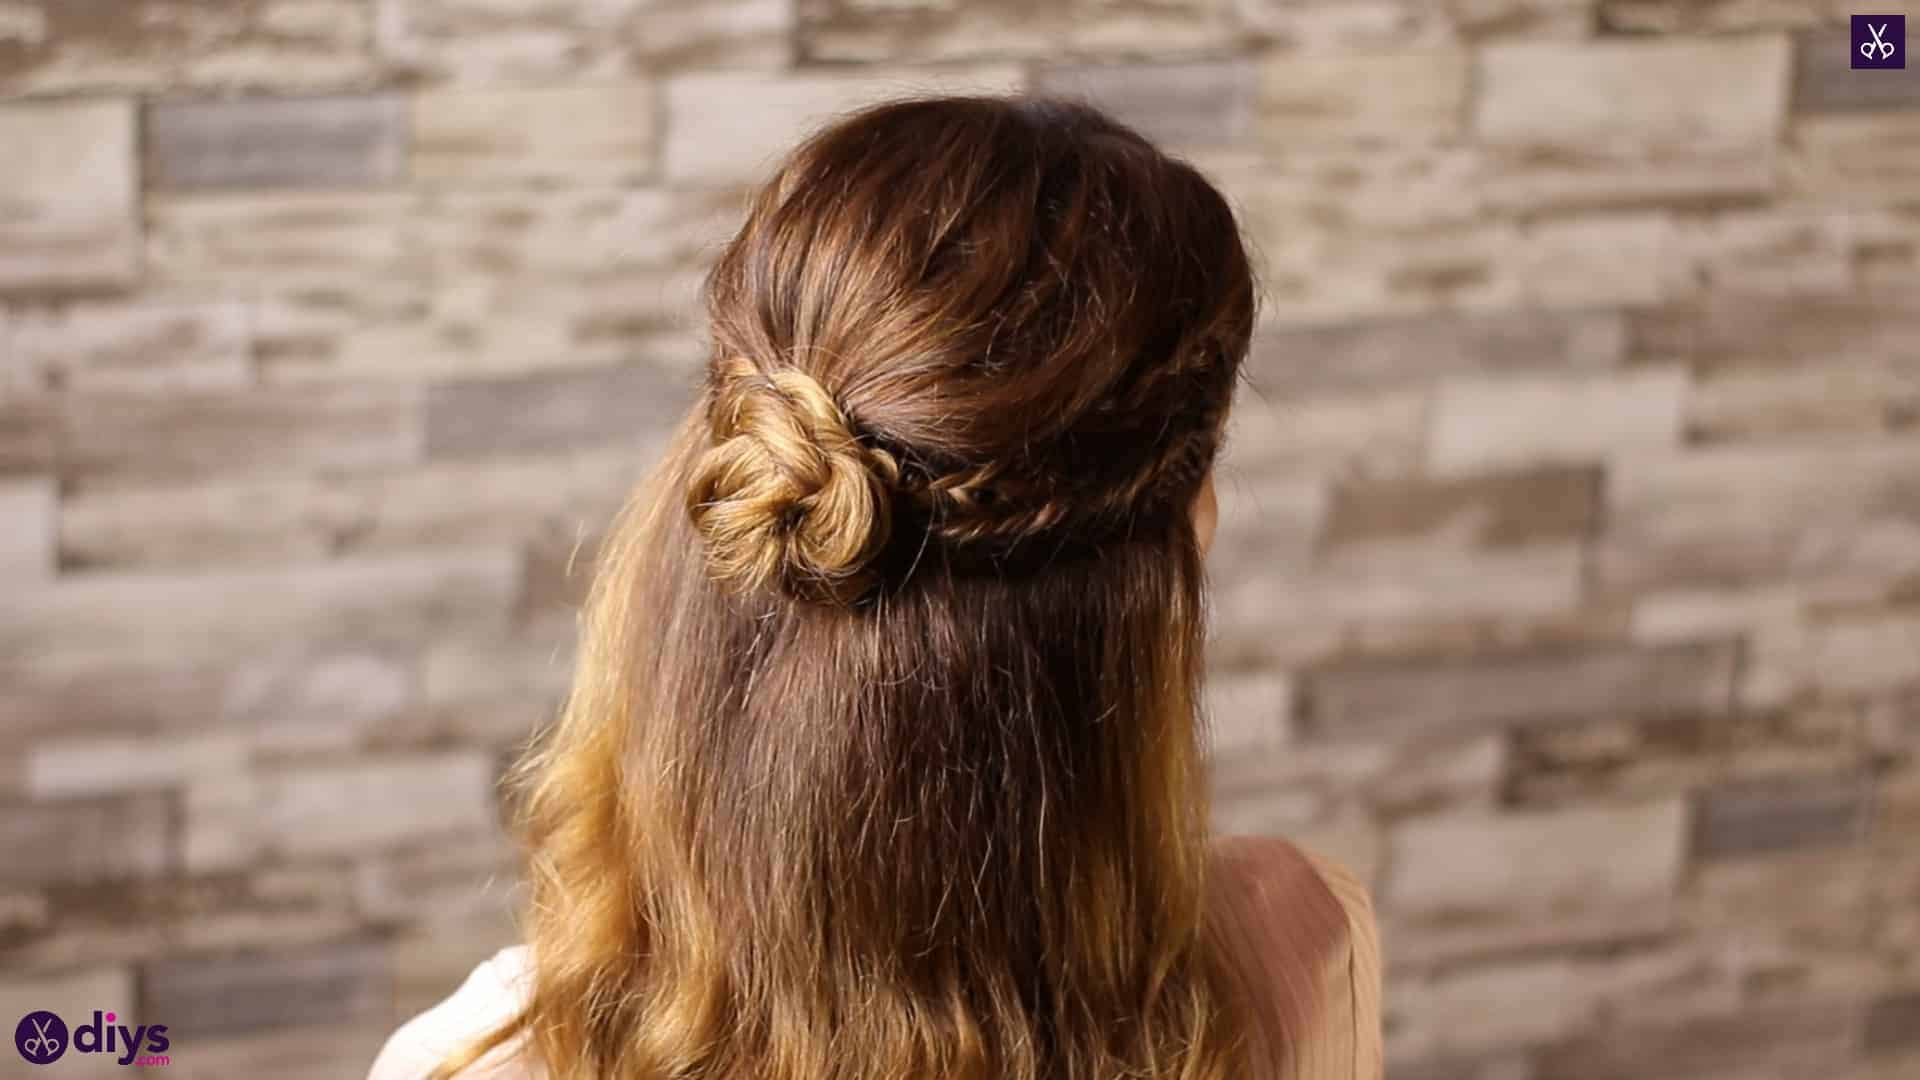 Half up, half down hairstyle for spring3